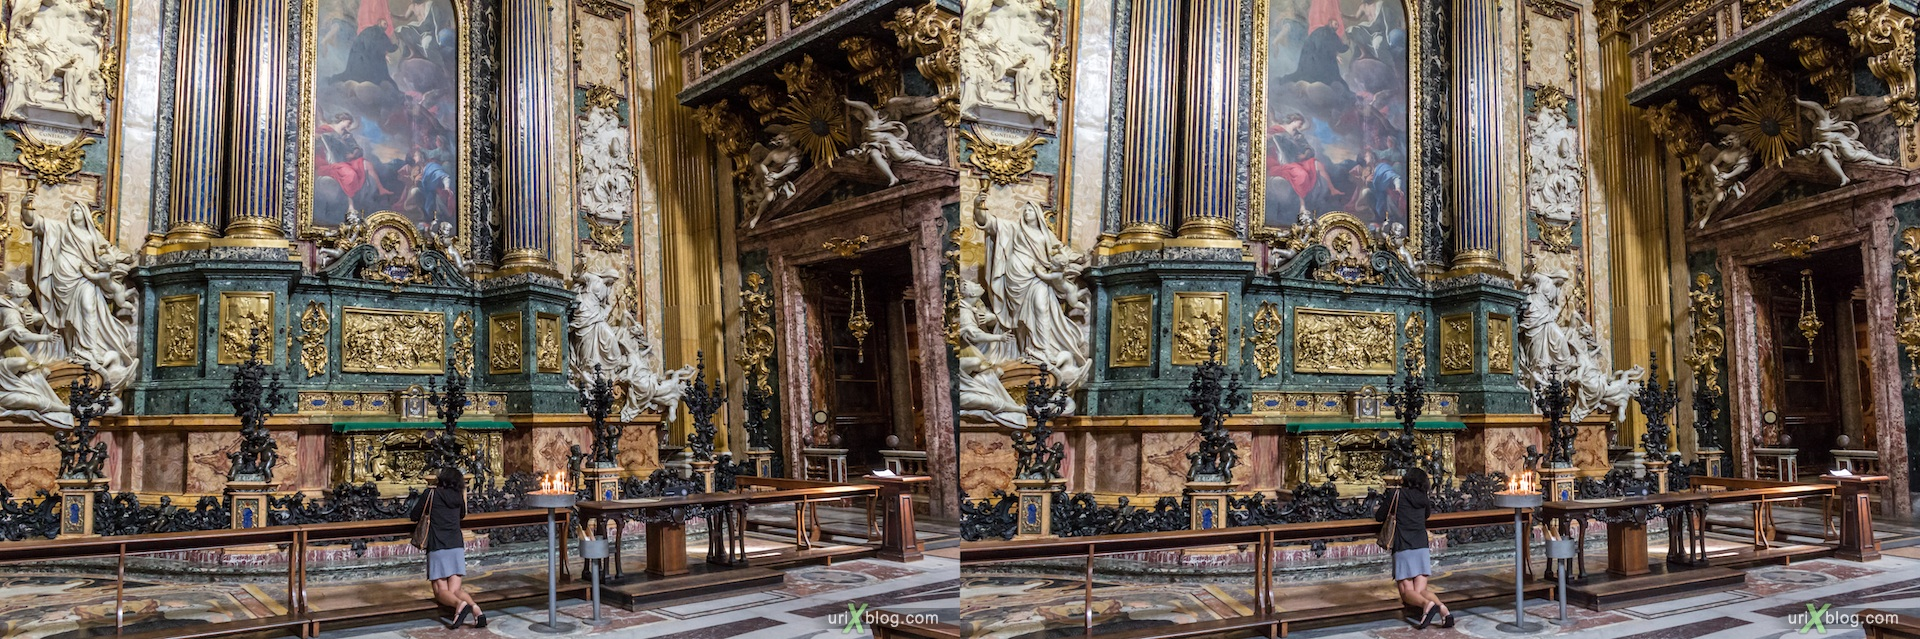 2012, church of the Gesù, Rome, Italy, cathedral, monastery, Christianity, Catholicism, 3D, stereo pair, cross-eyed, crossview, cross view stereo pair